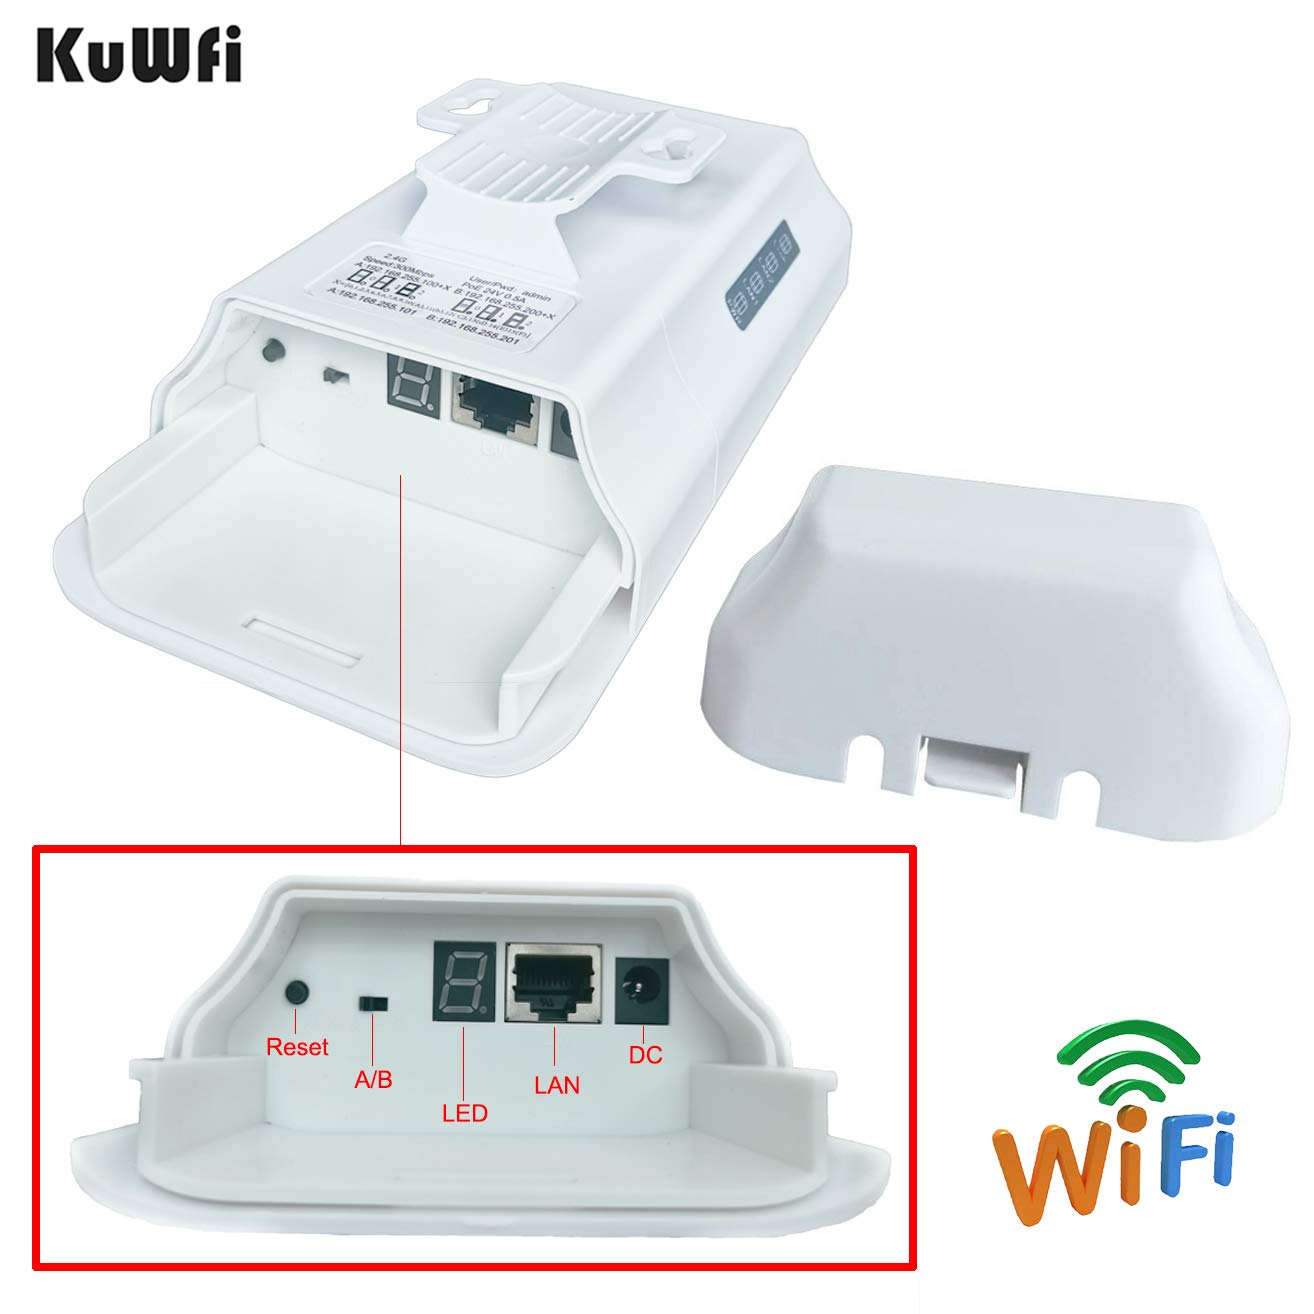 KuWFi 2-Pack 300Mbps Wireless Bridge CPE Kit,Indoor&Outdoor Point-to-Point  Bridge/CPE Supports 2KM Transmission Distance Solution for PTP, PTMP